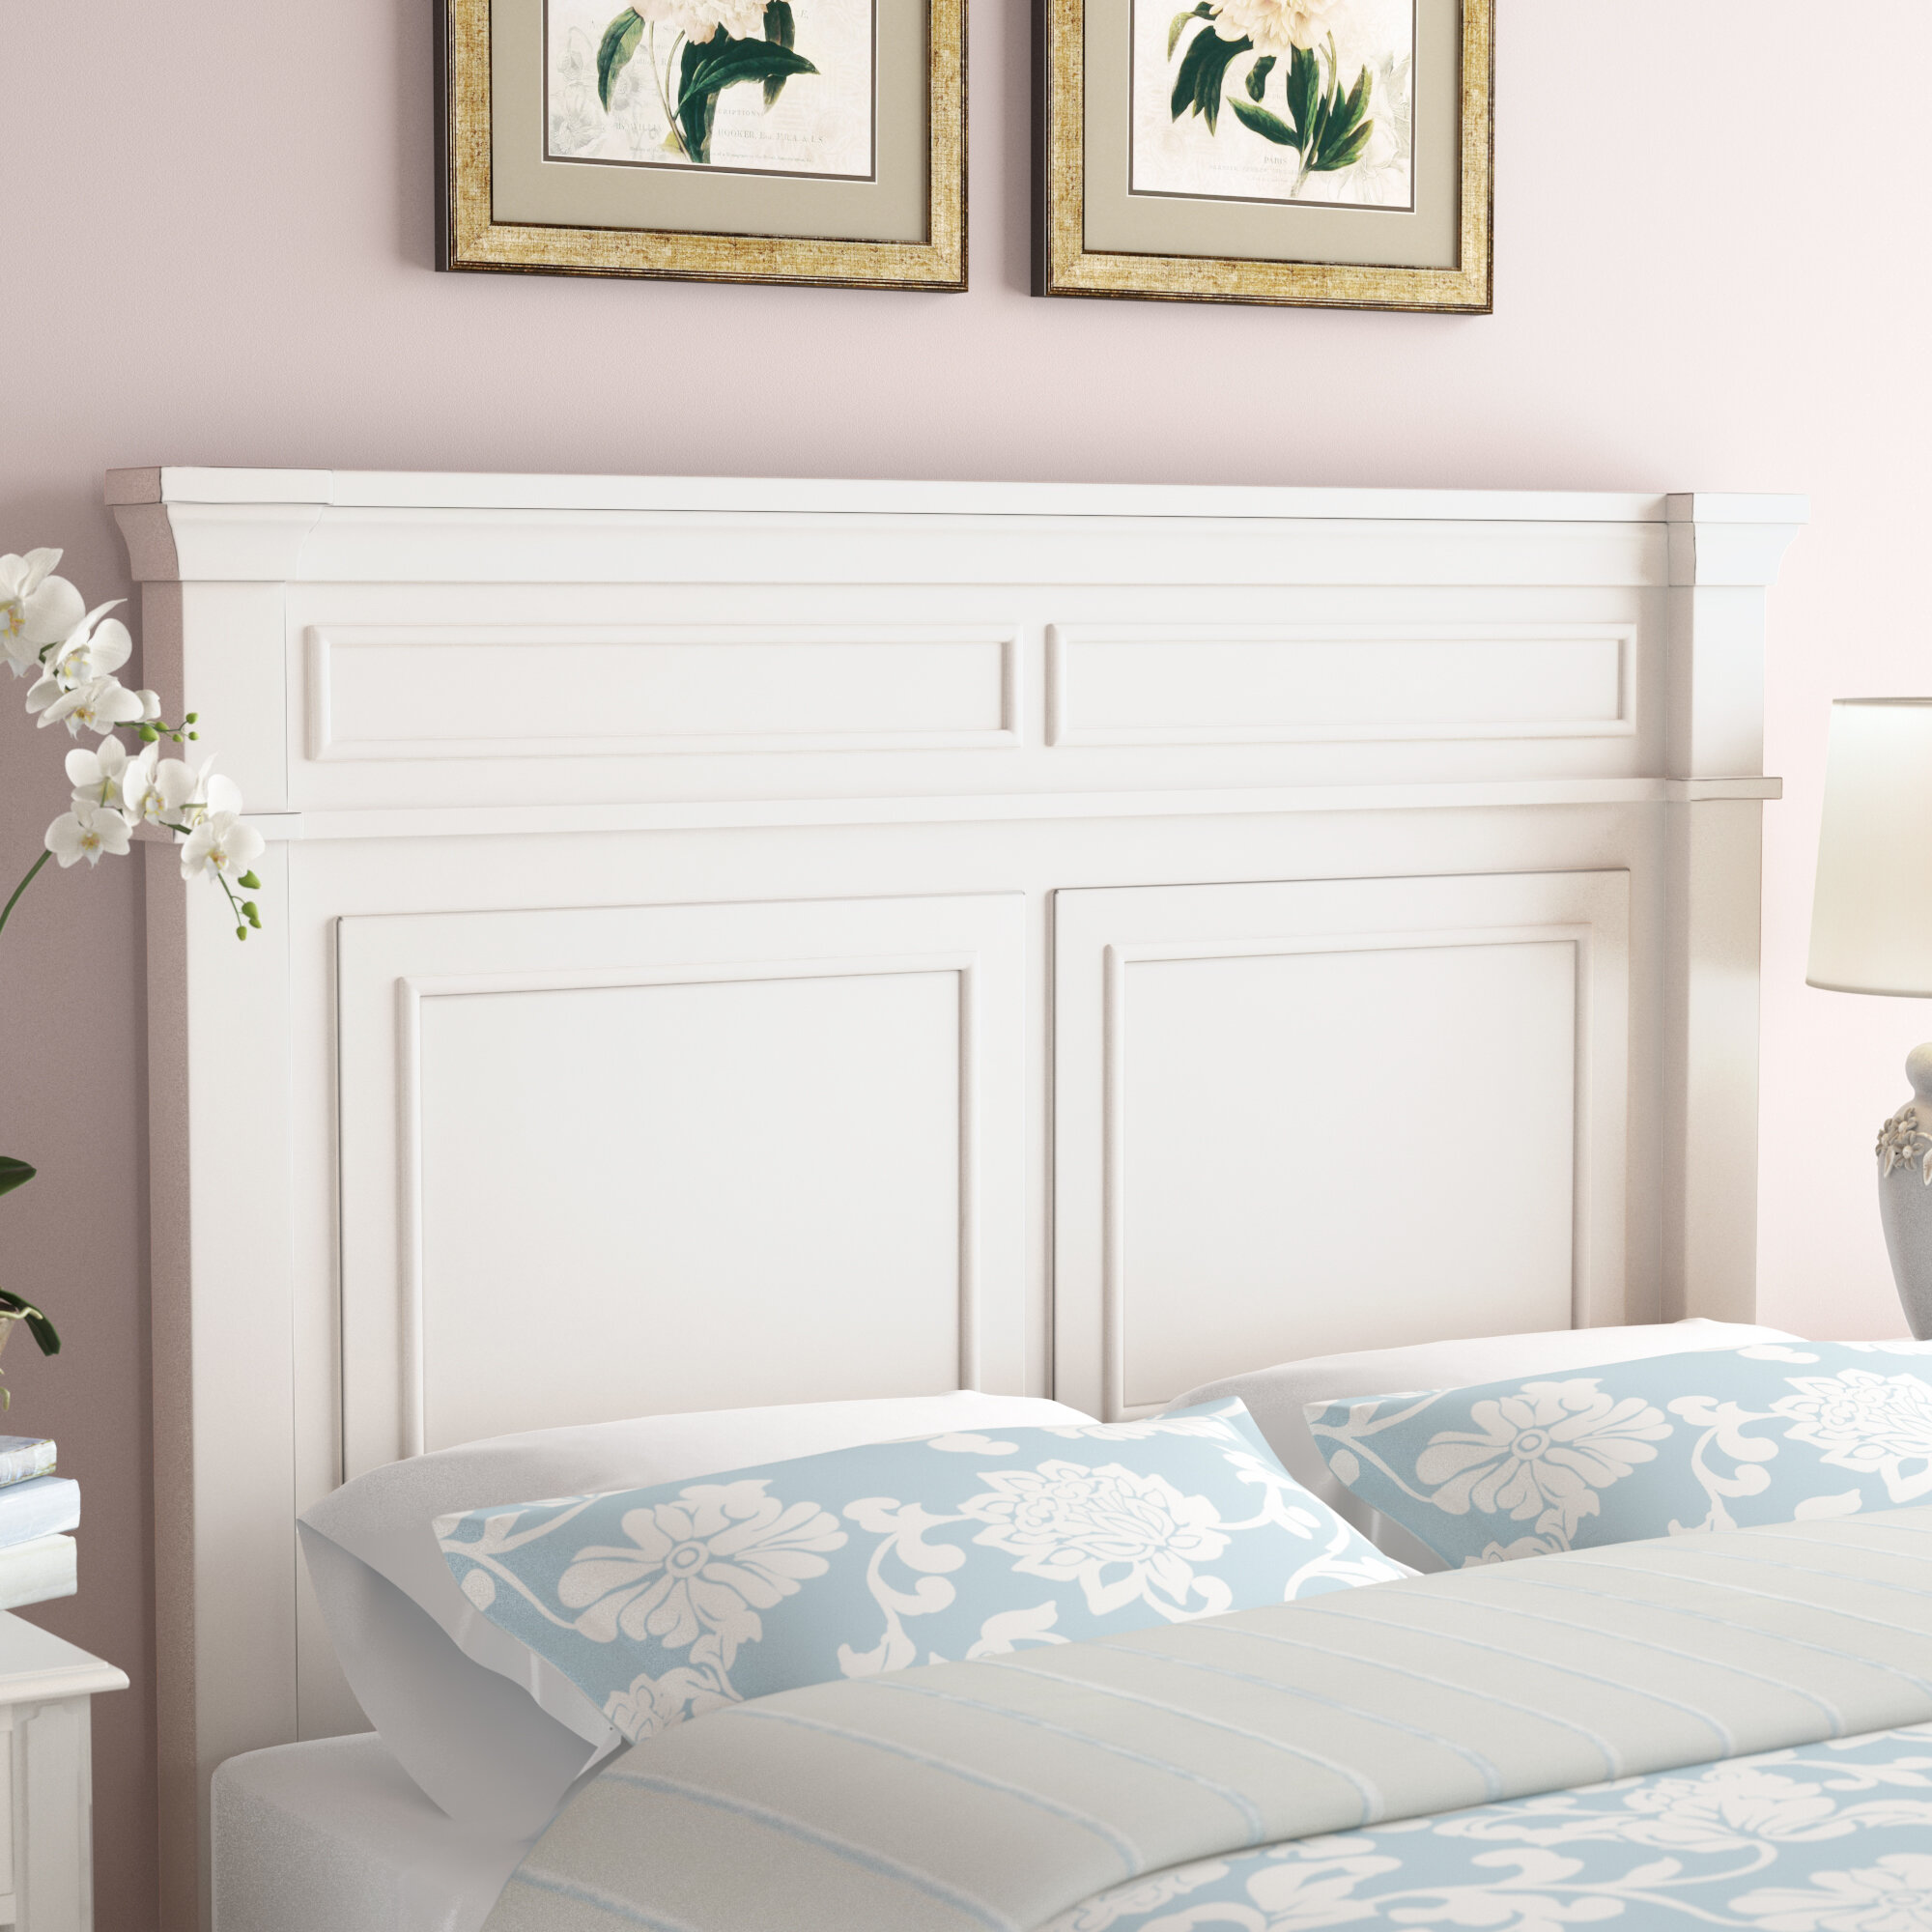 size headboard daybed from diy plush design splendid ideas panel inspiration twin headboards upholstered wood